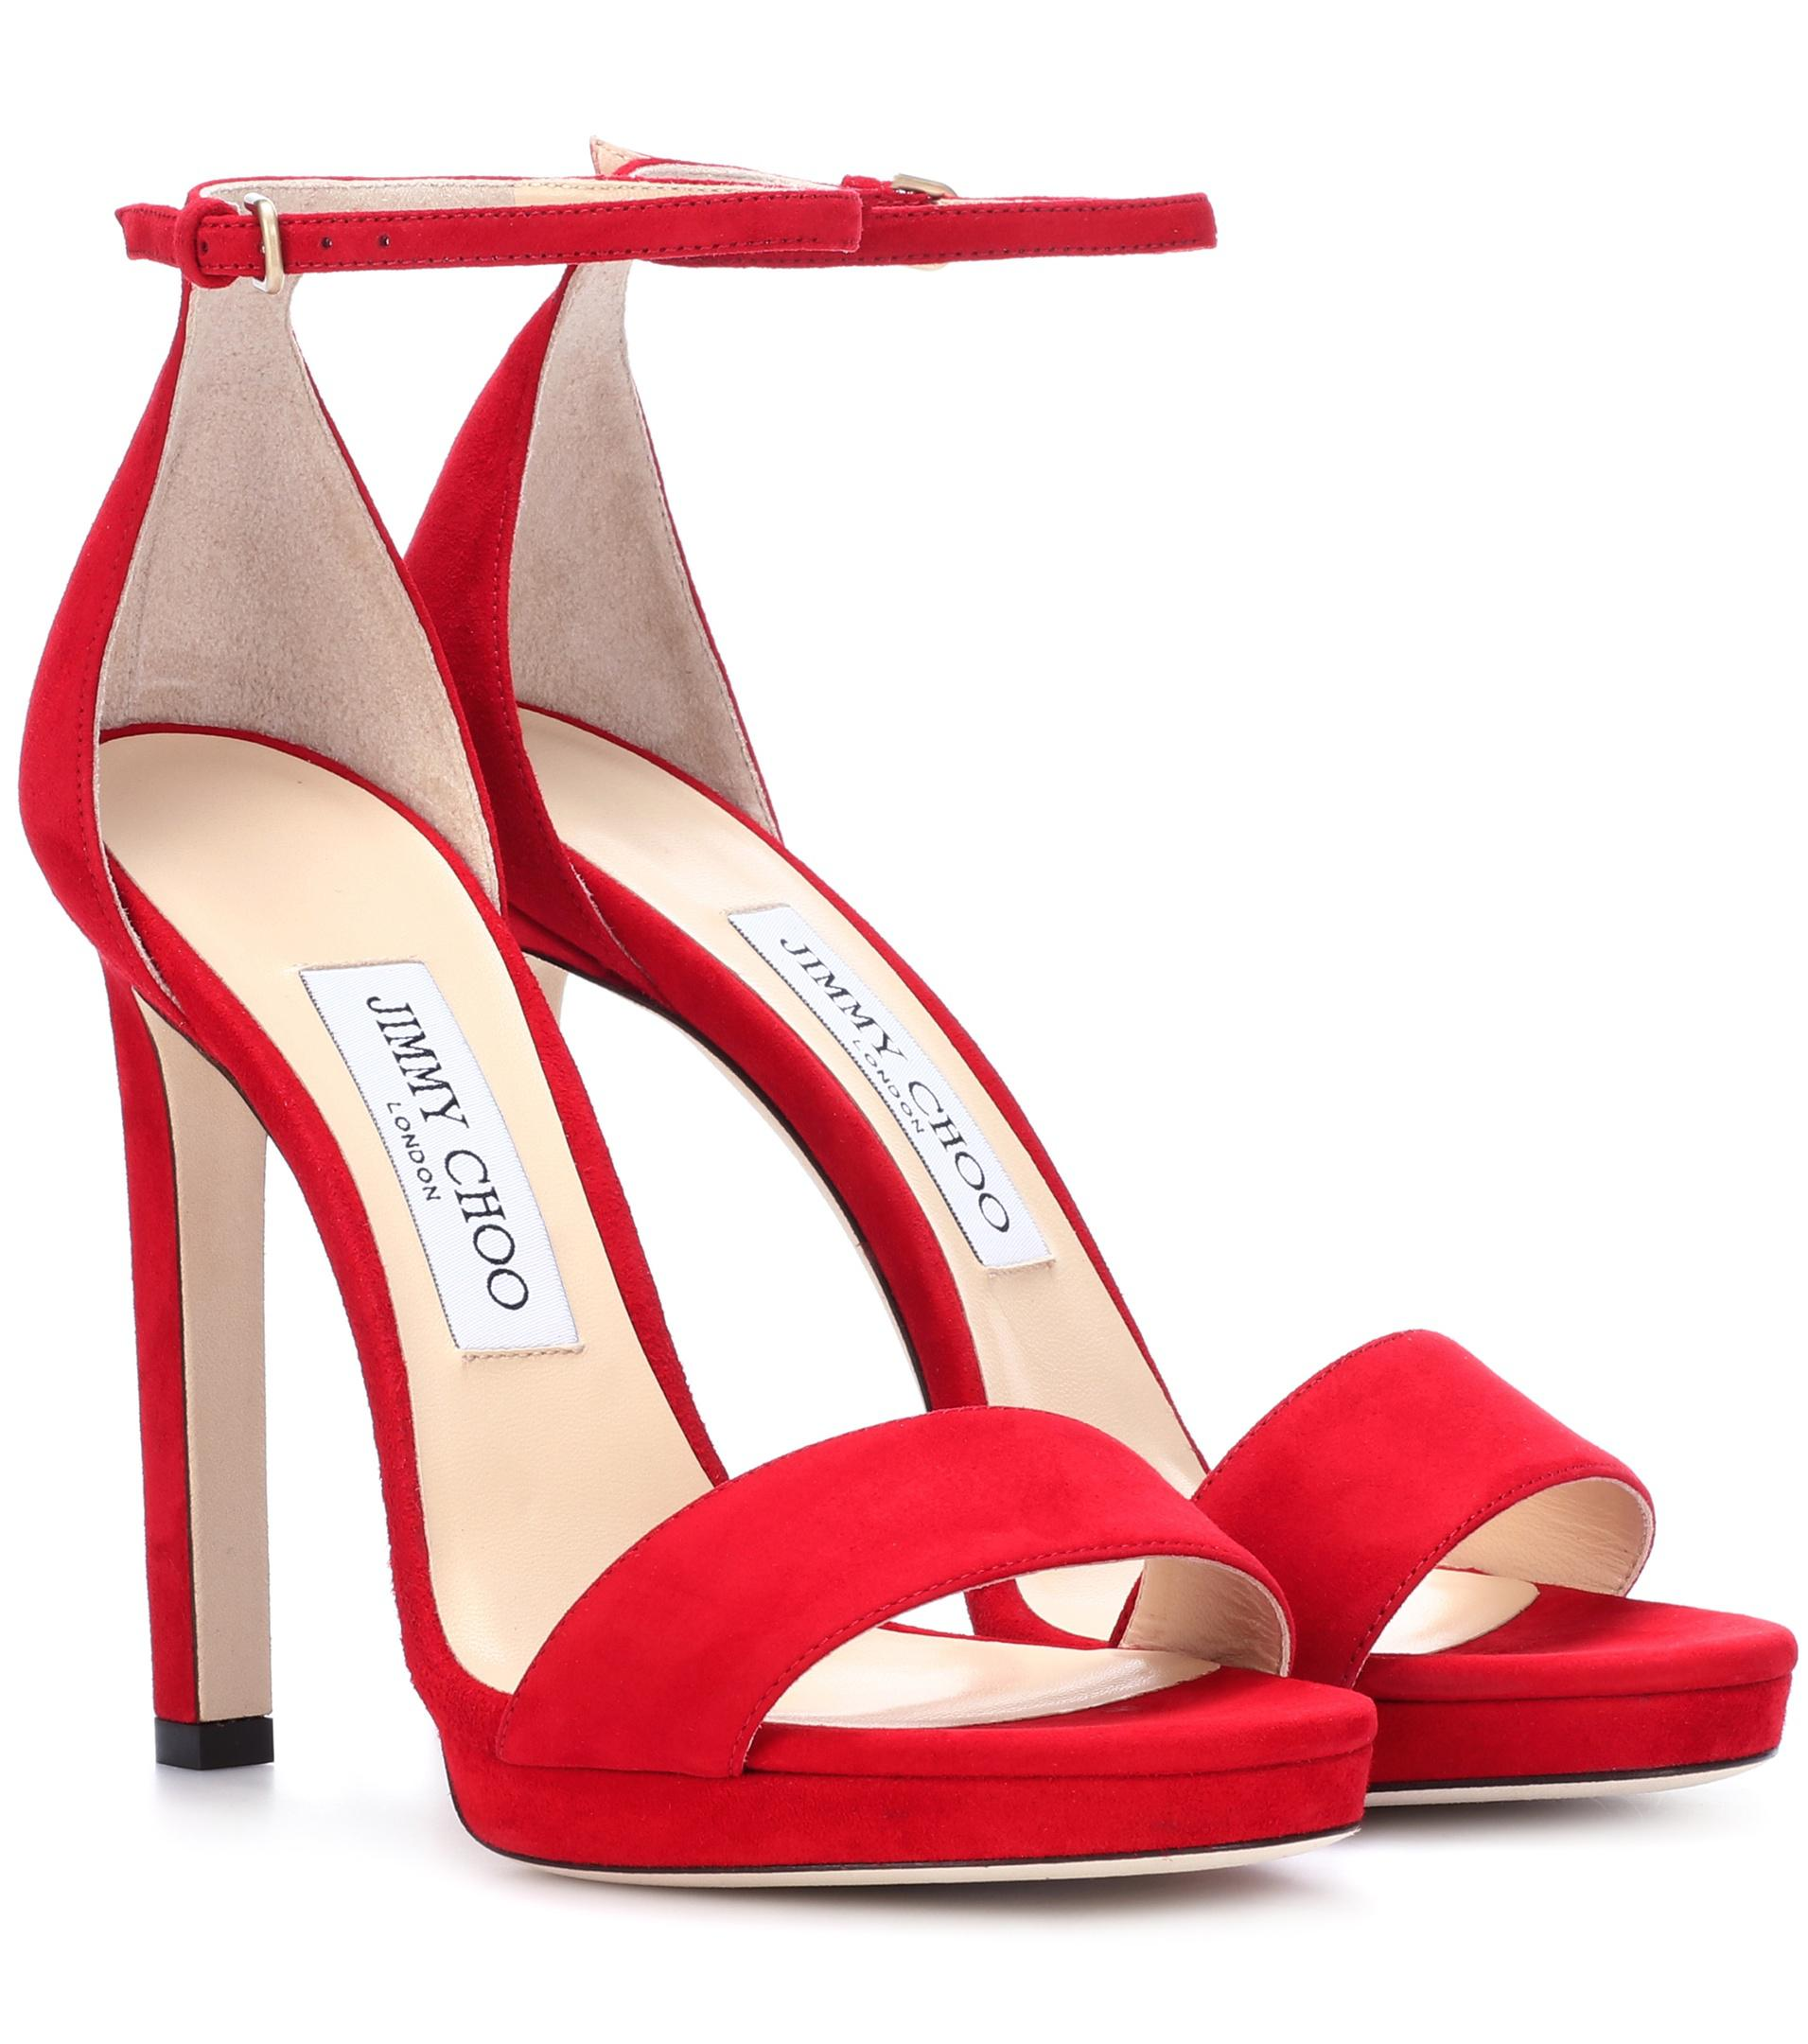 421412b00d2 ... coupon code for jimmy choo red misty 120 suede sandals lyst. view  fullscreen 3edff b476d